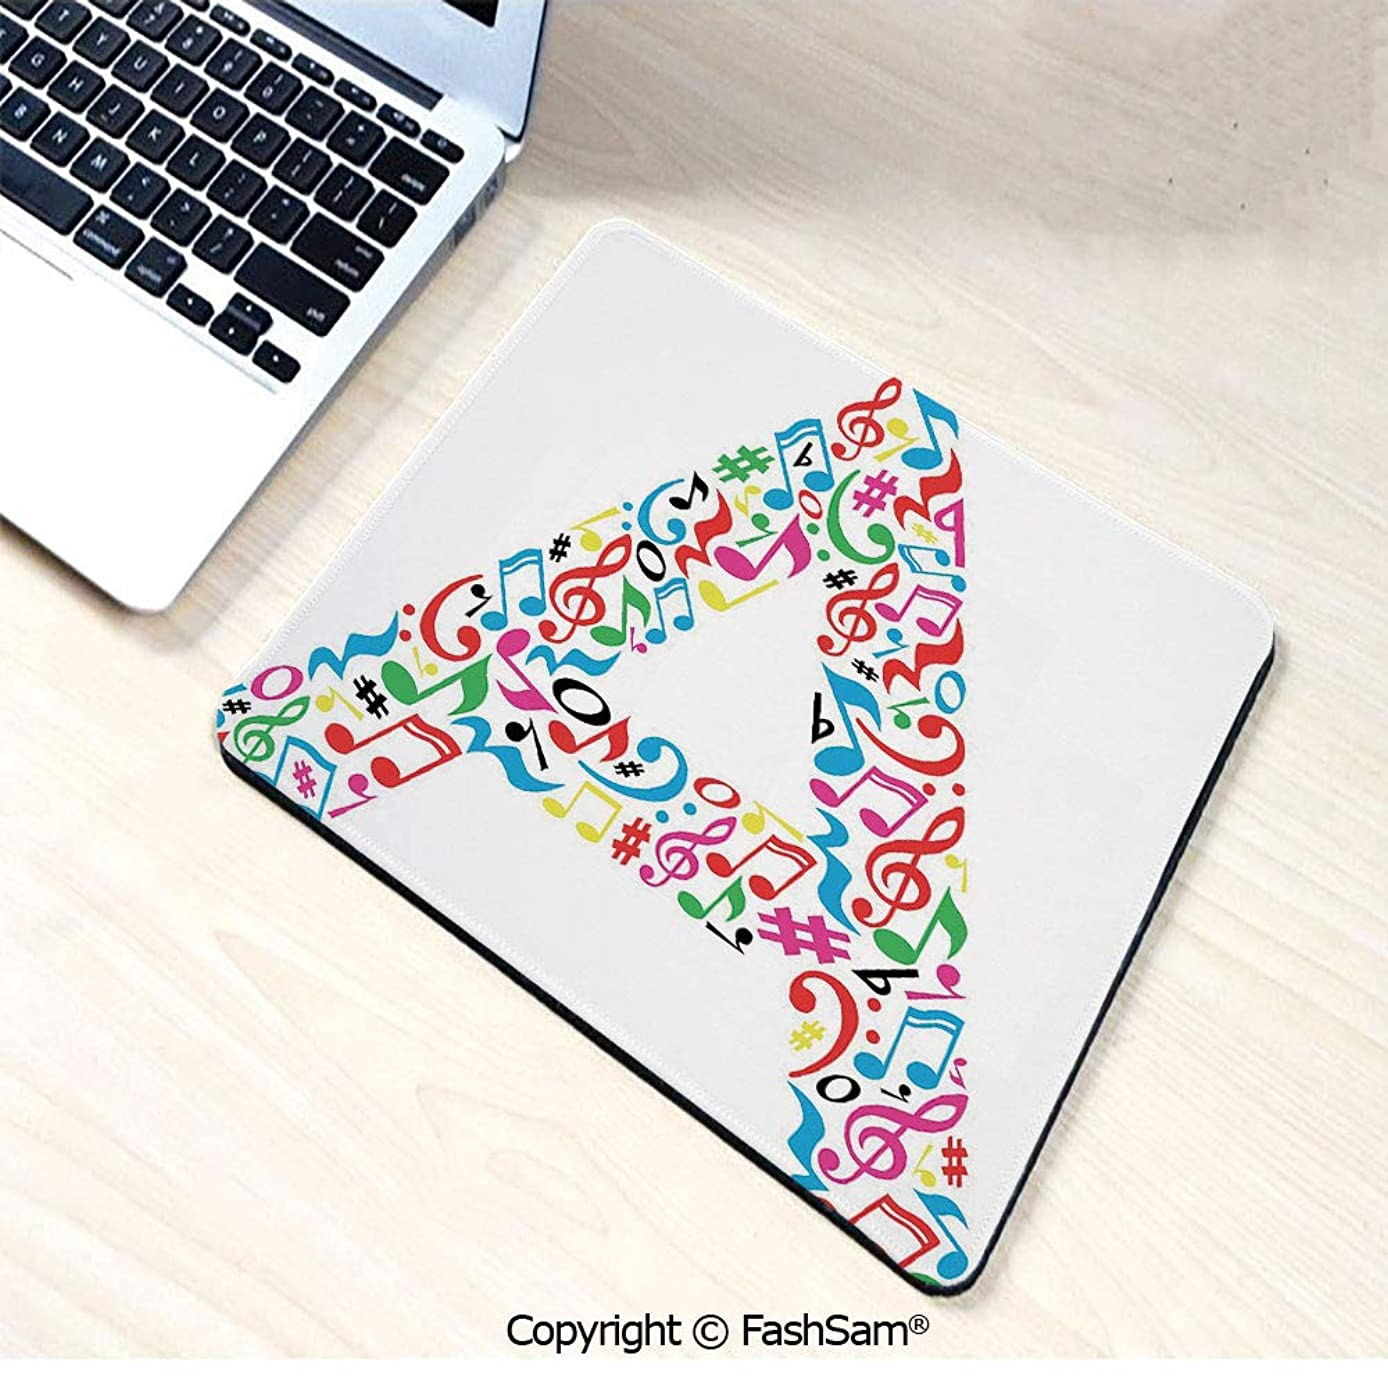 Non-Slip Rubber Mouse Pads Graphic Composition with Do Re Mi Art Symbols Letter A Lively Colors Inspirational for Computers Laptop Office(W7.8xL9.45)